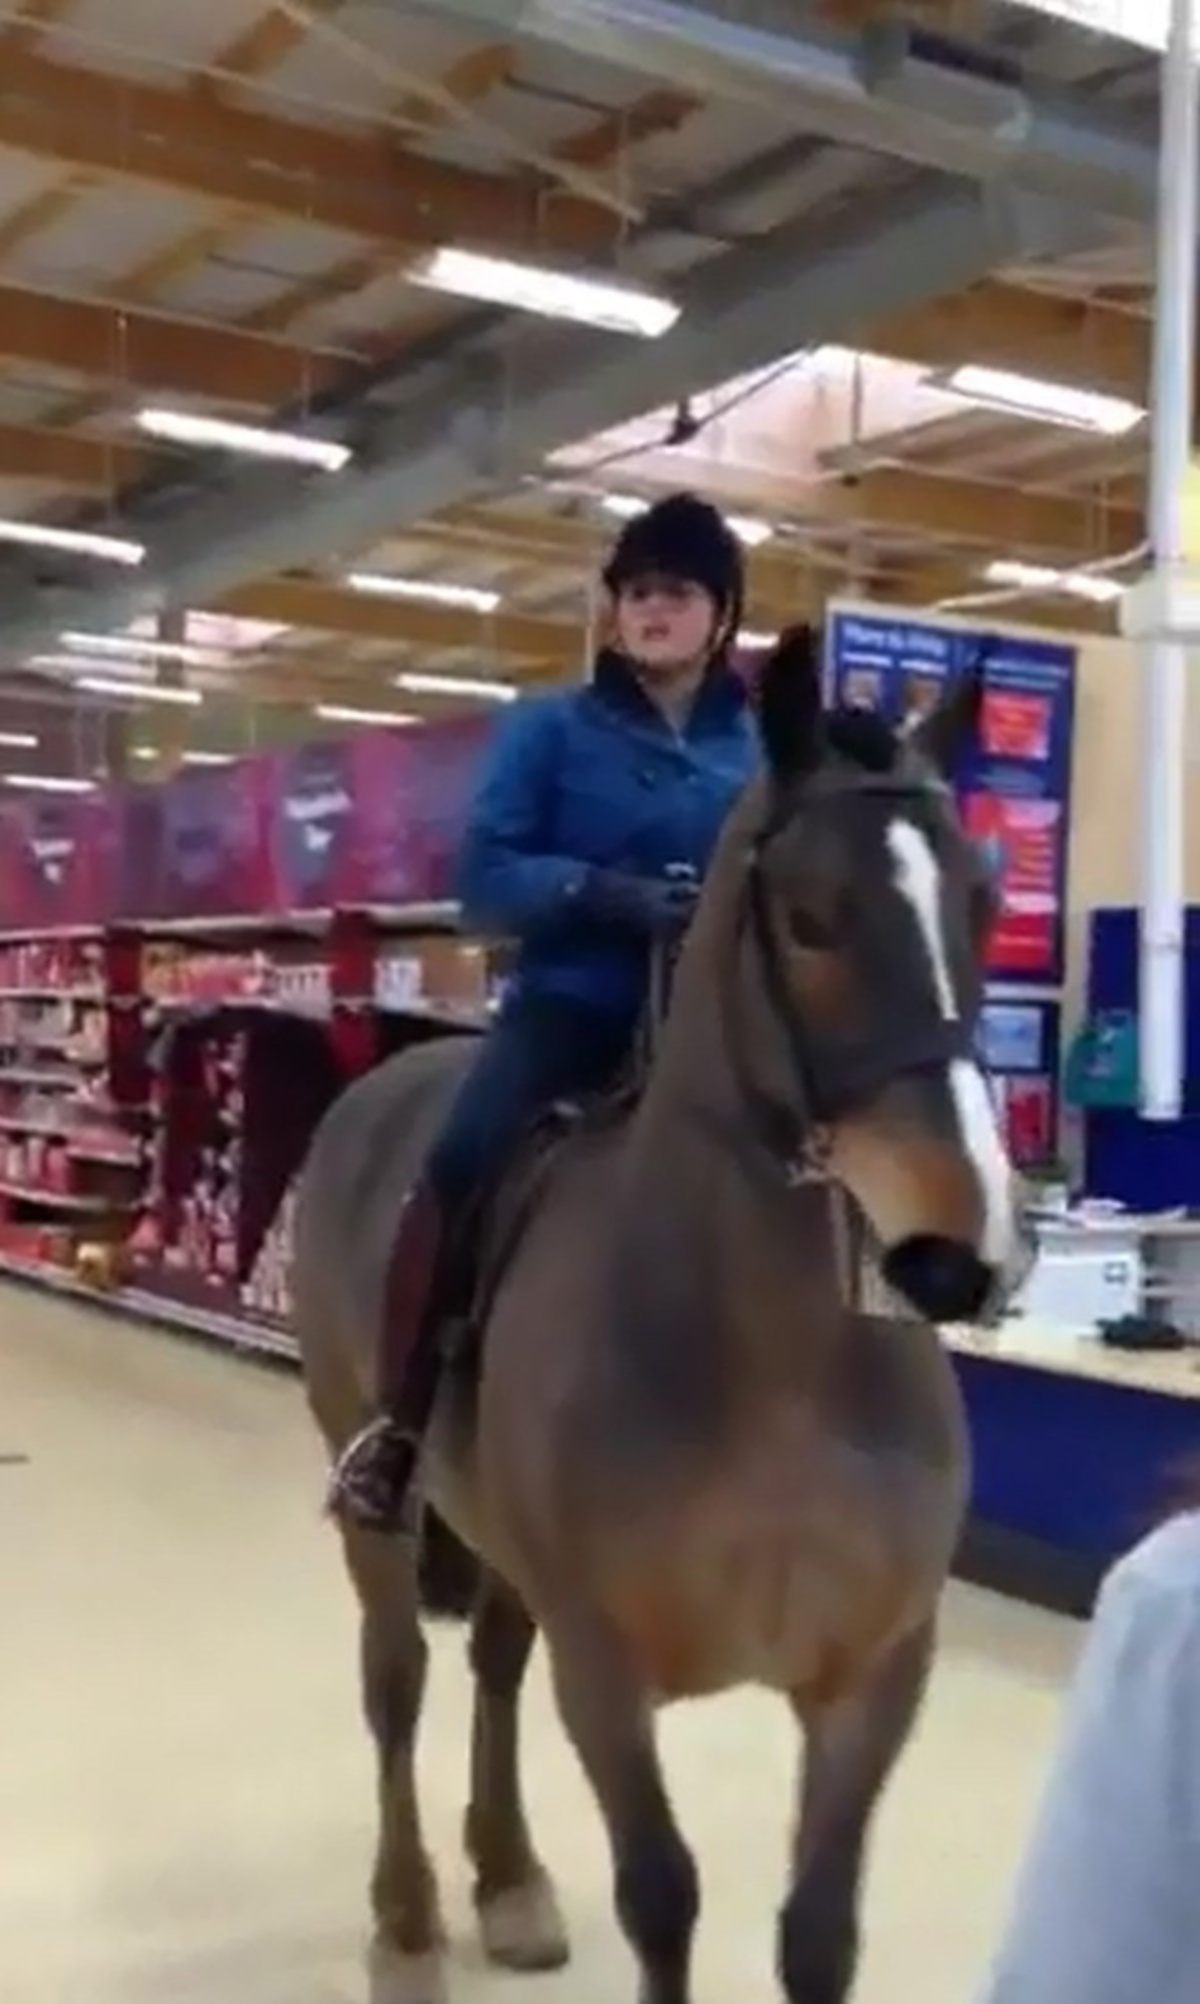 Concerns raised over dangers of NekNominations after woman rides horse into Tesco in Bishop Auckland